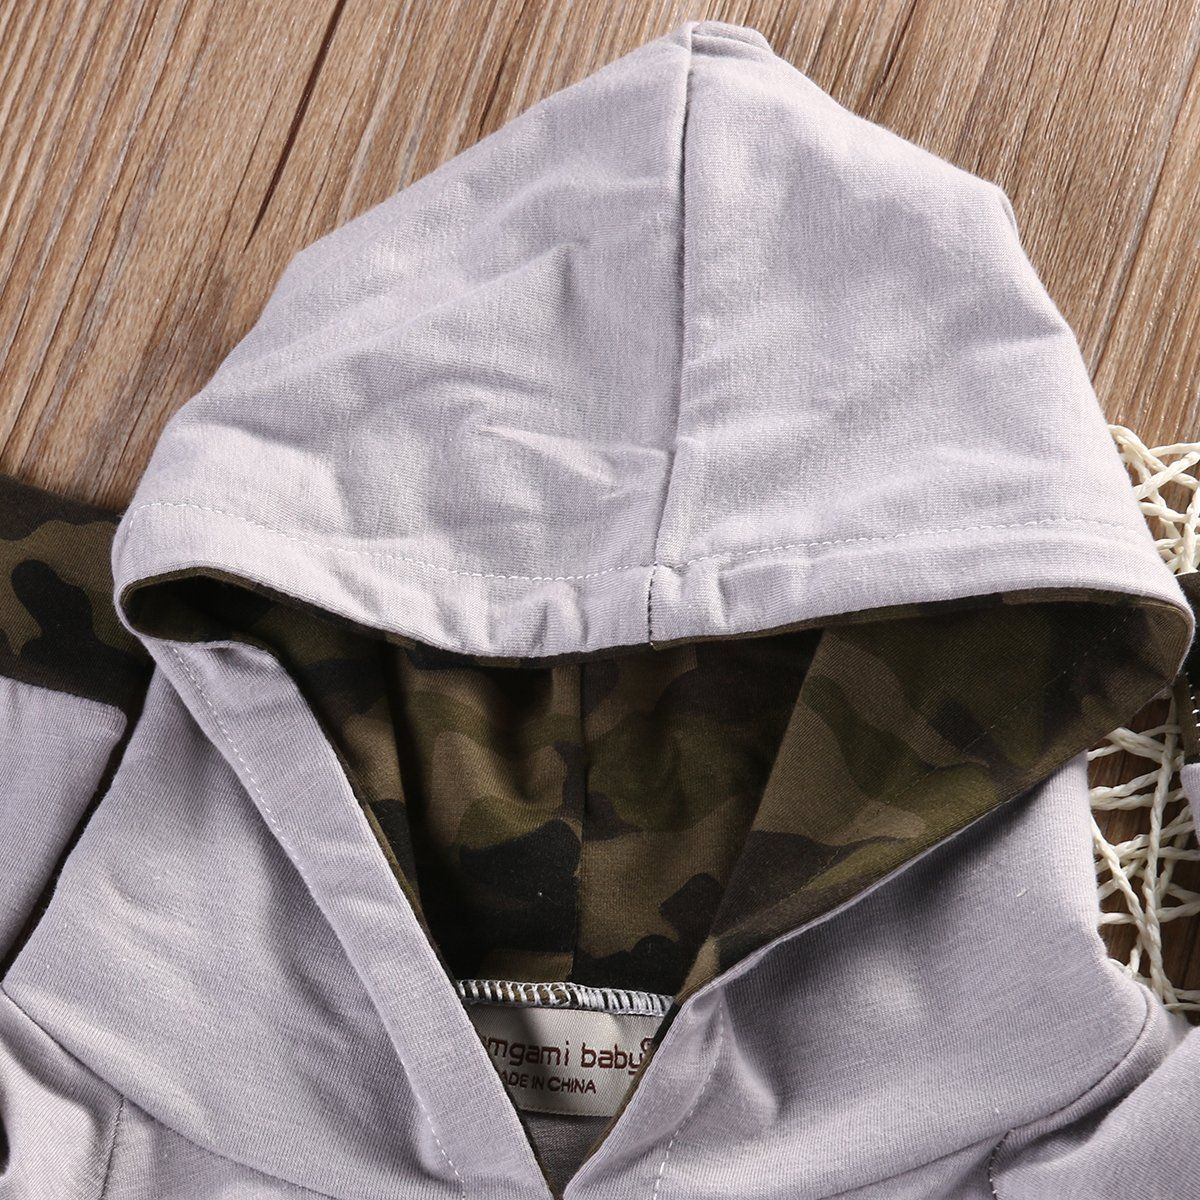 7323f235e Newborn Infant Baby Boy Girls Camouflage Clothes Hooded TShirt Tops Pants  Outfits 06 Months ** Read more reviews of the product by visiting the link  on the ...